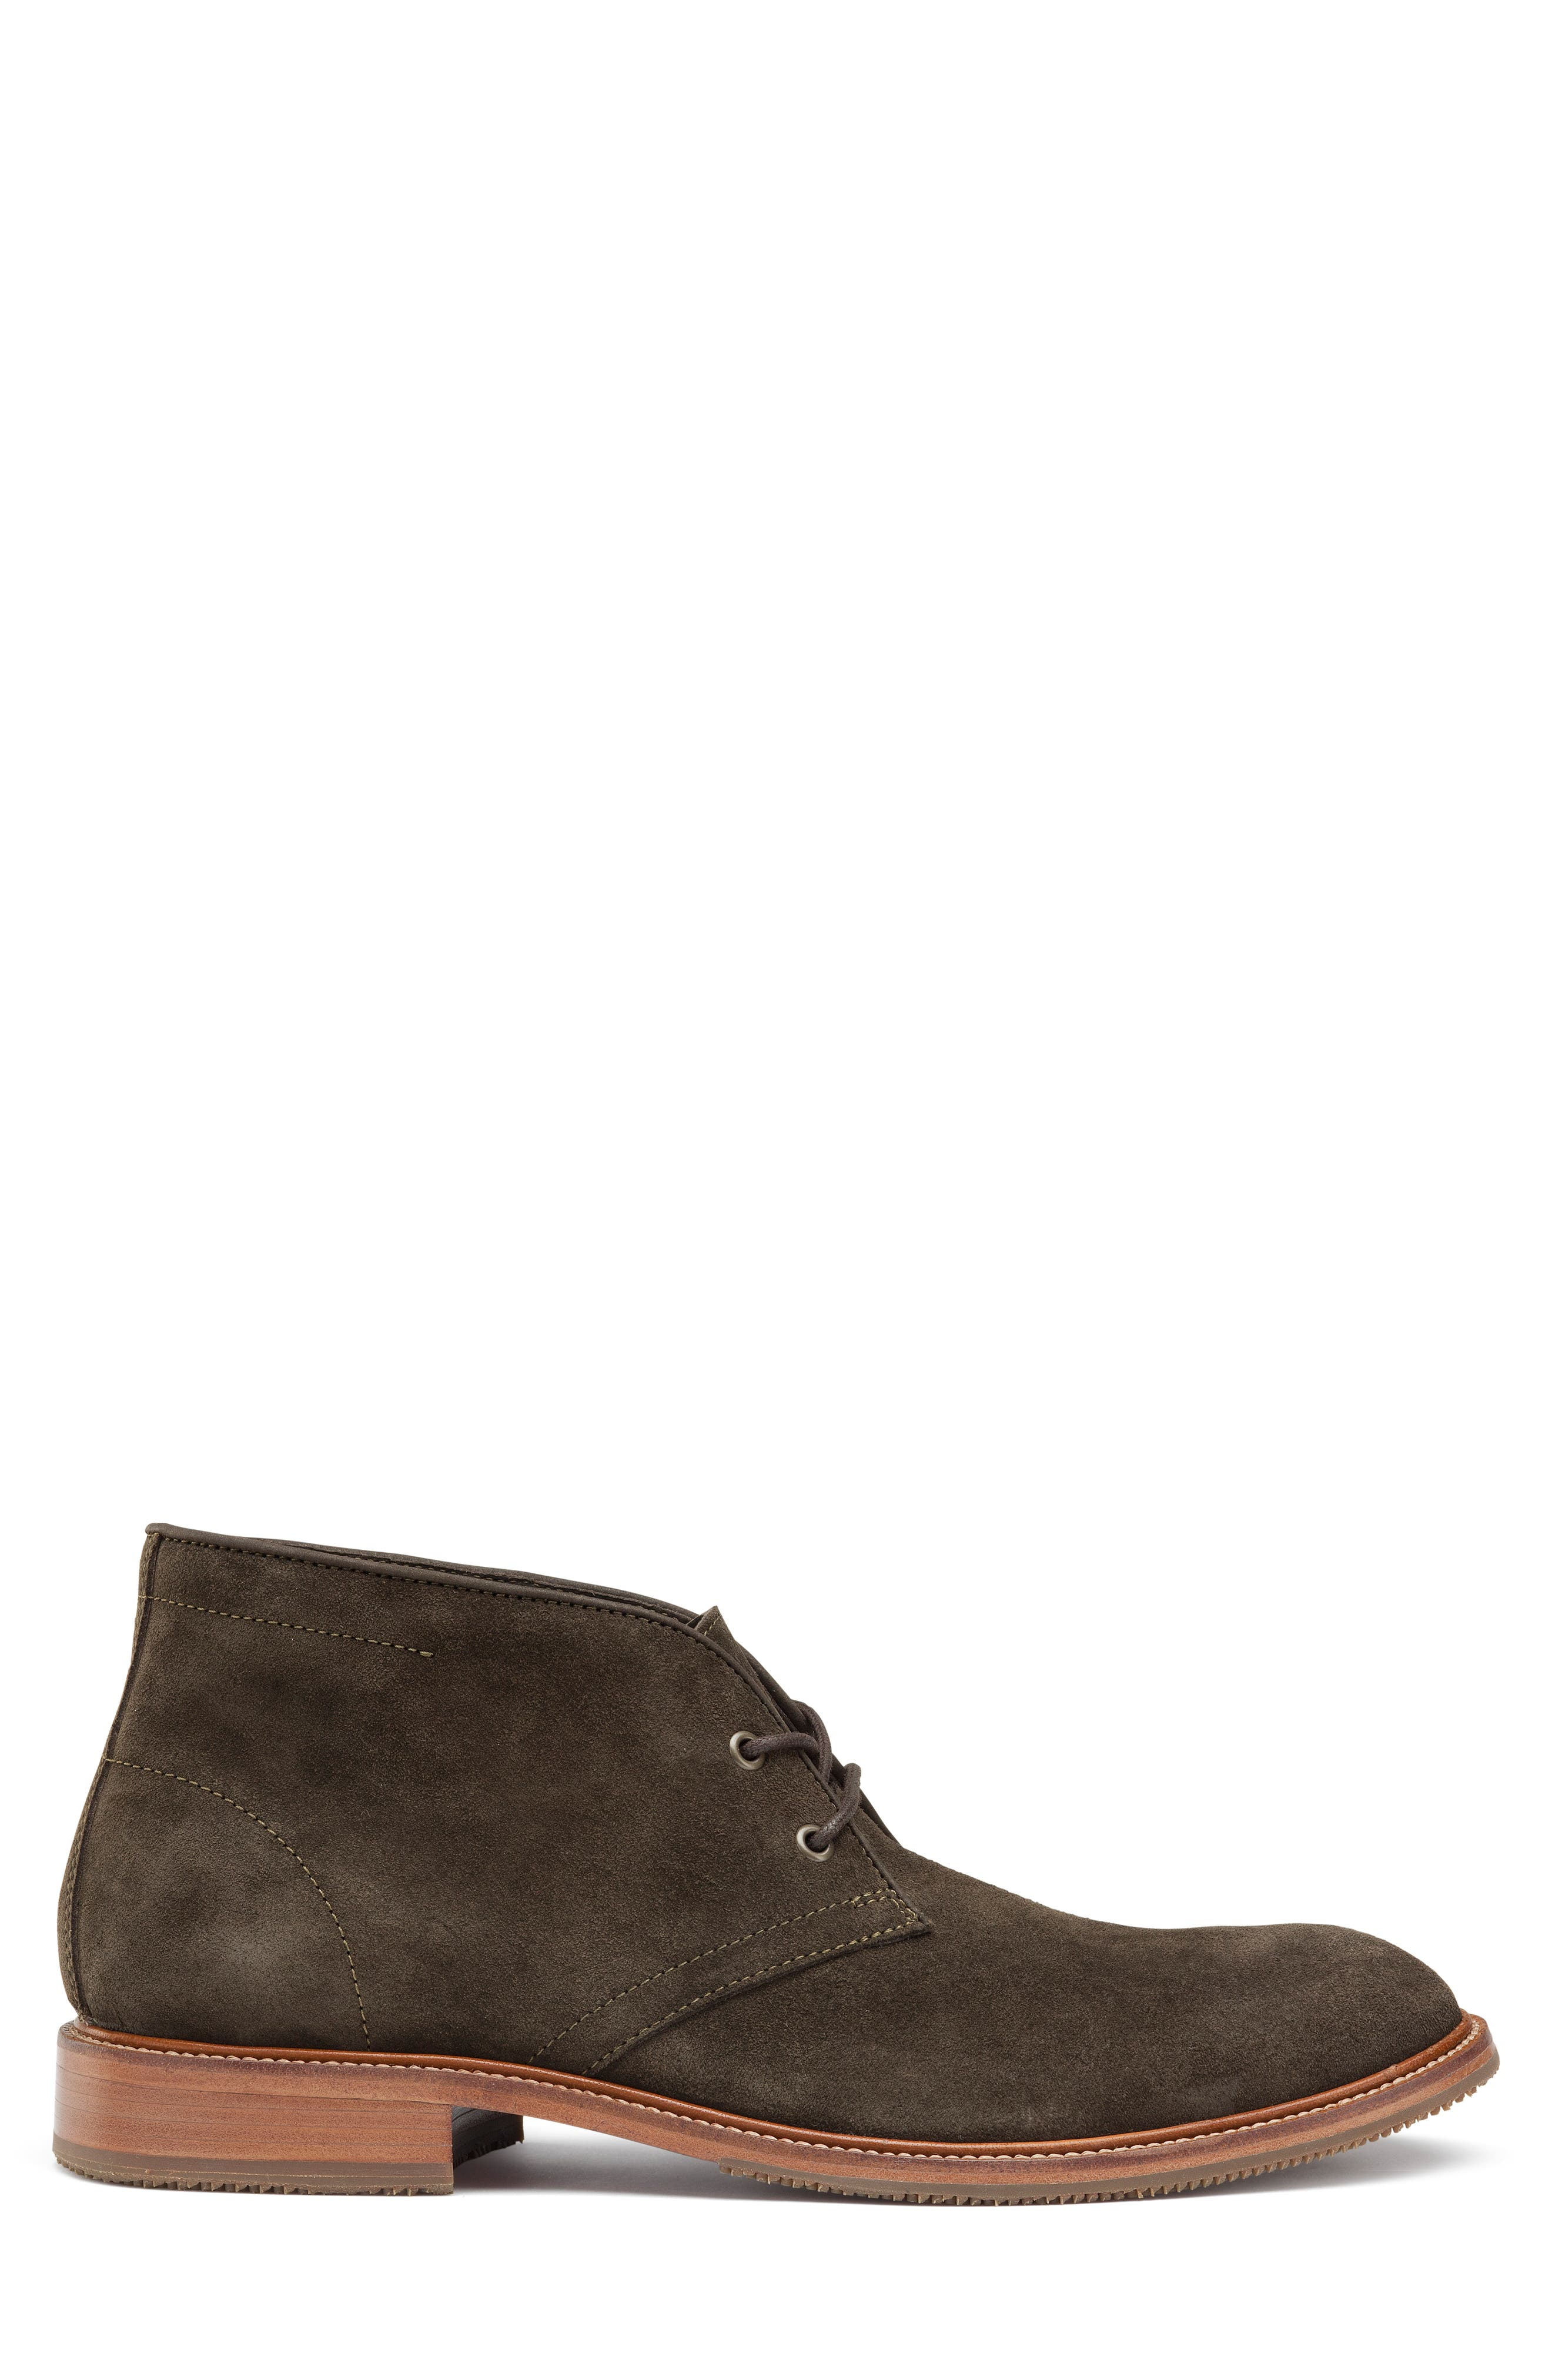 TRASK, Landers Chukka Boot, Alternate thumbnail 3, color, OLIVE SUEDE